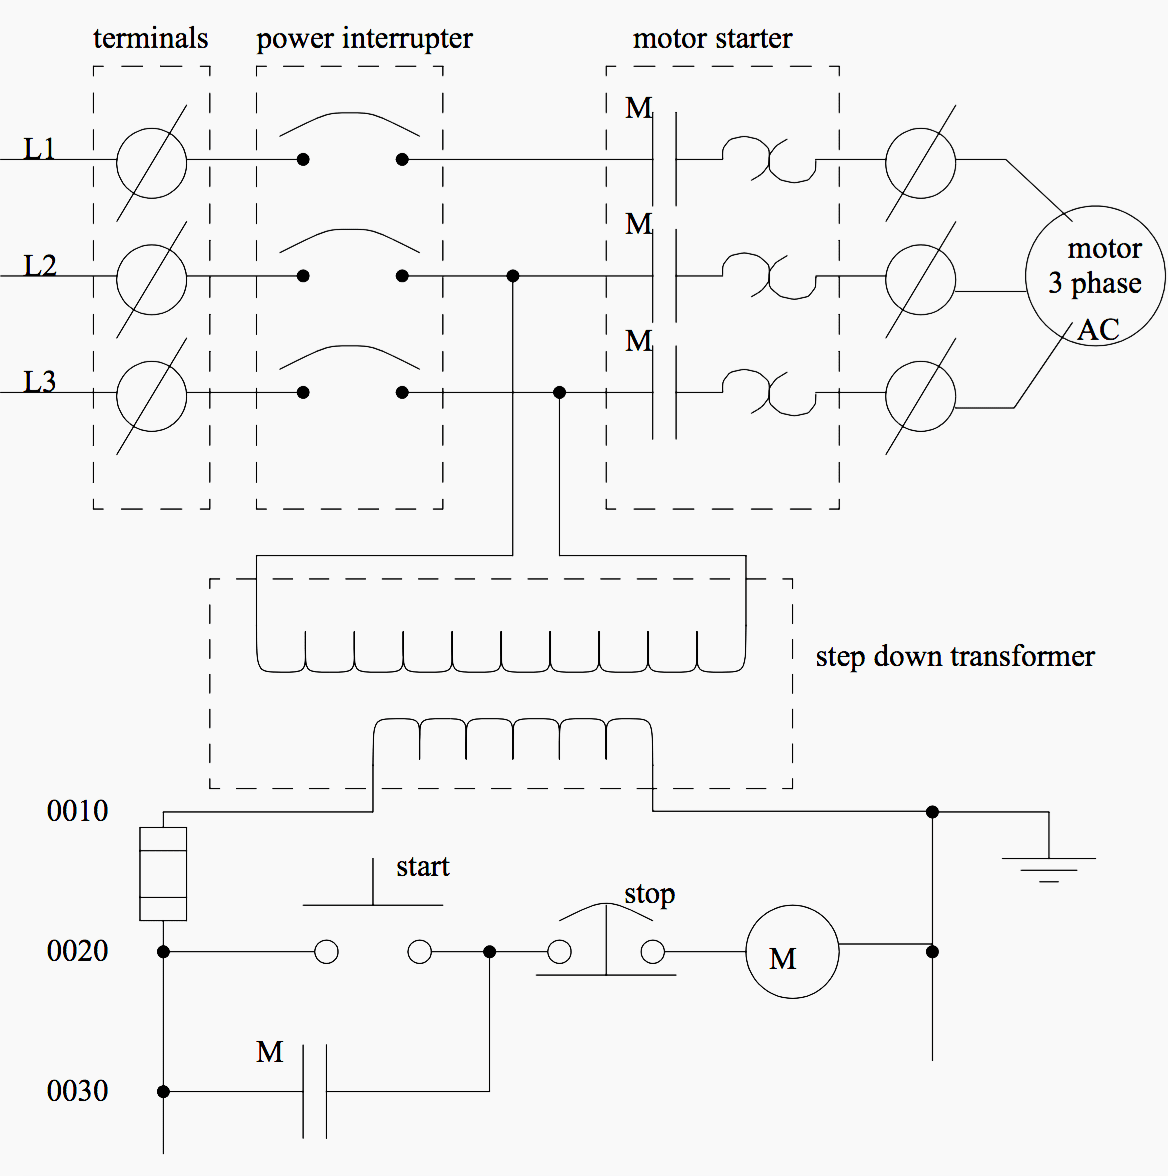 hight resolution of basic electrical design of a plc panel wiring diagrams eepa motor controller schematic